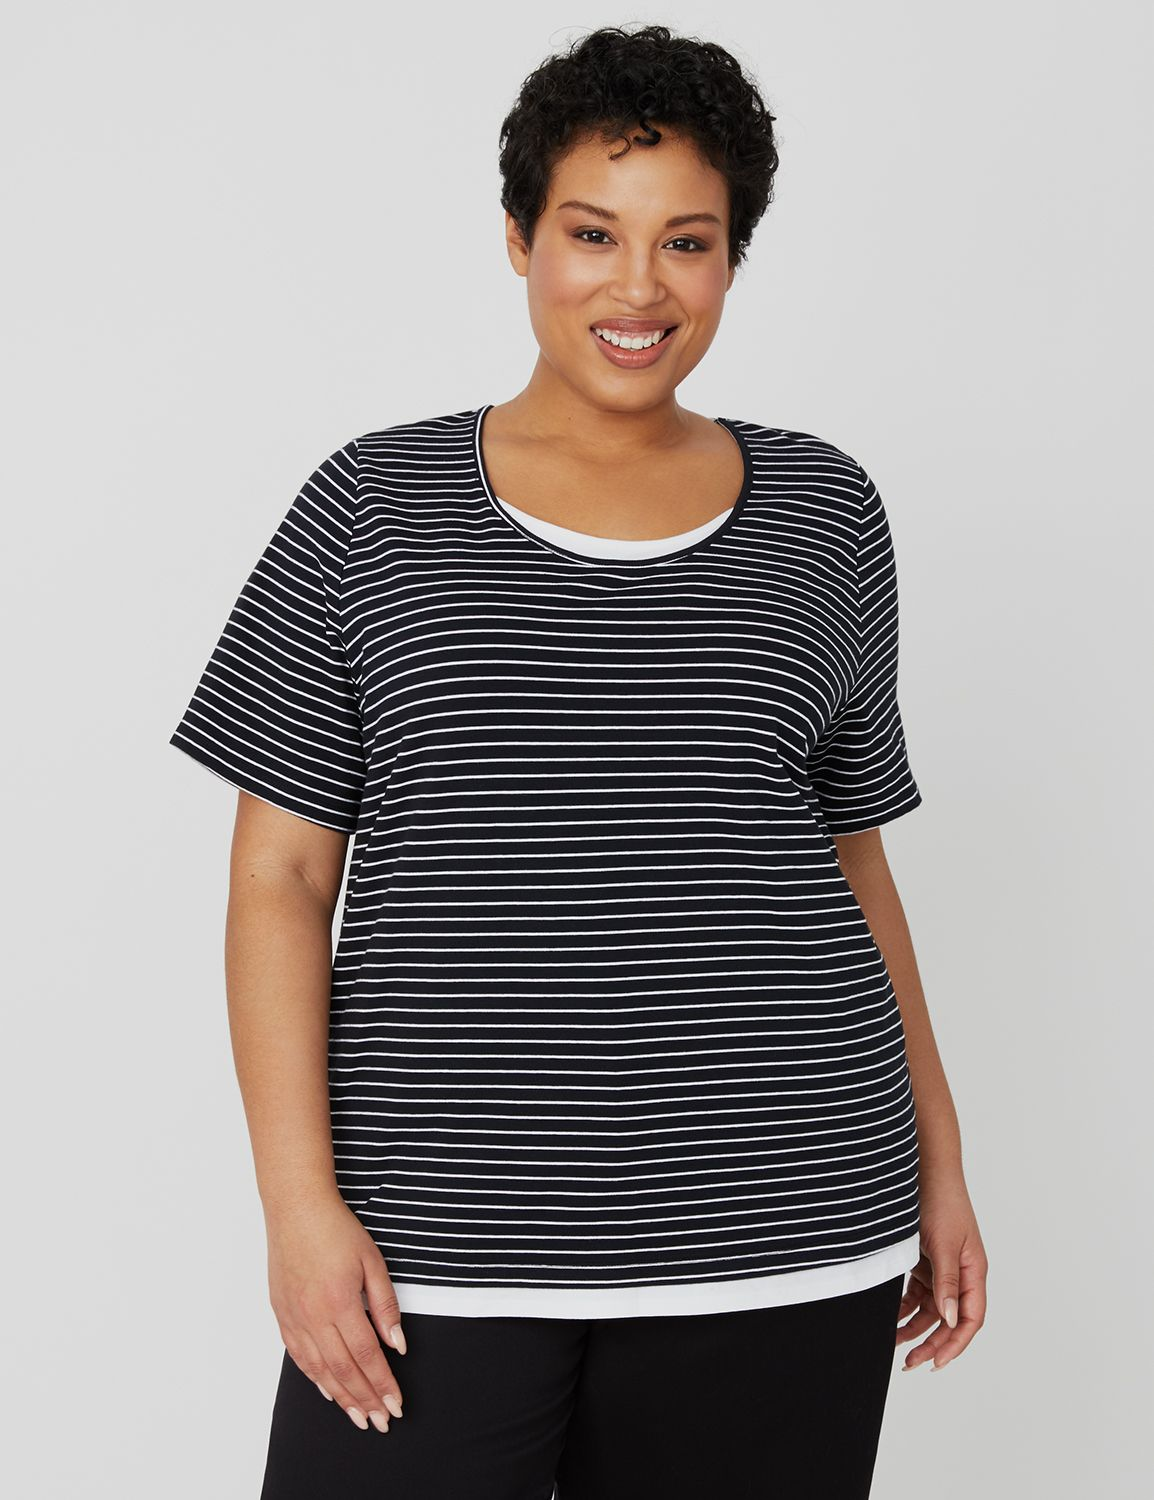 Suprema Duet Stripe Tee 1092768 SUPREMA SS- STRIPE 2FOR MP-300104393